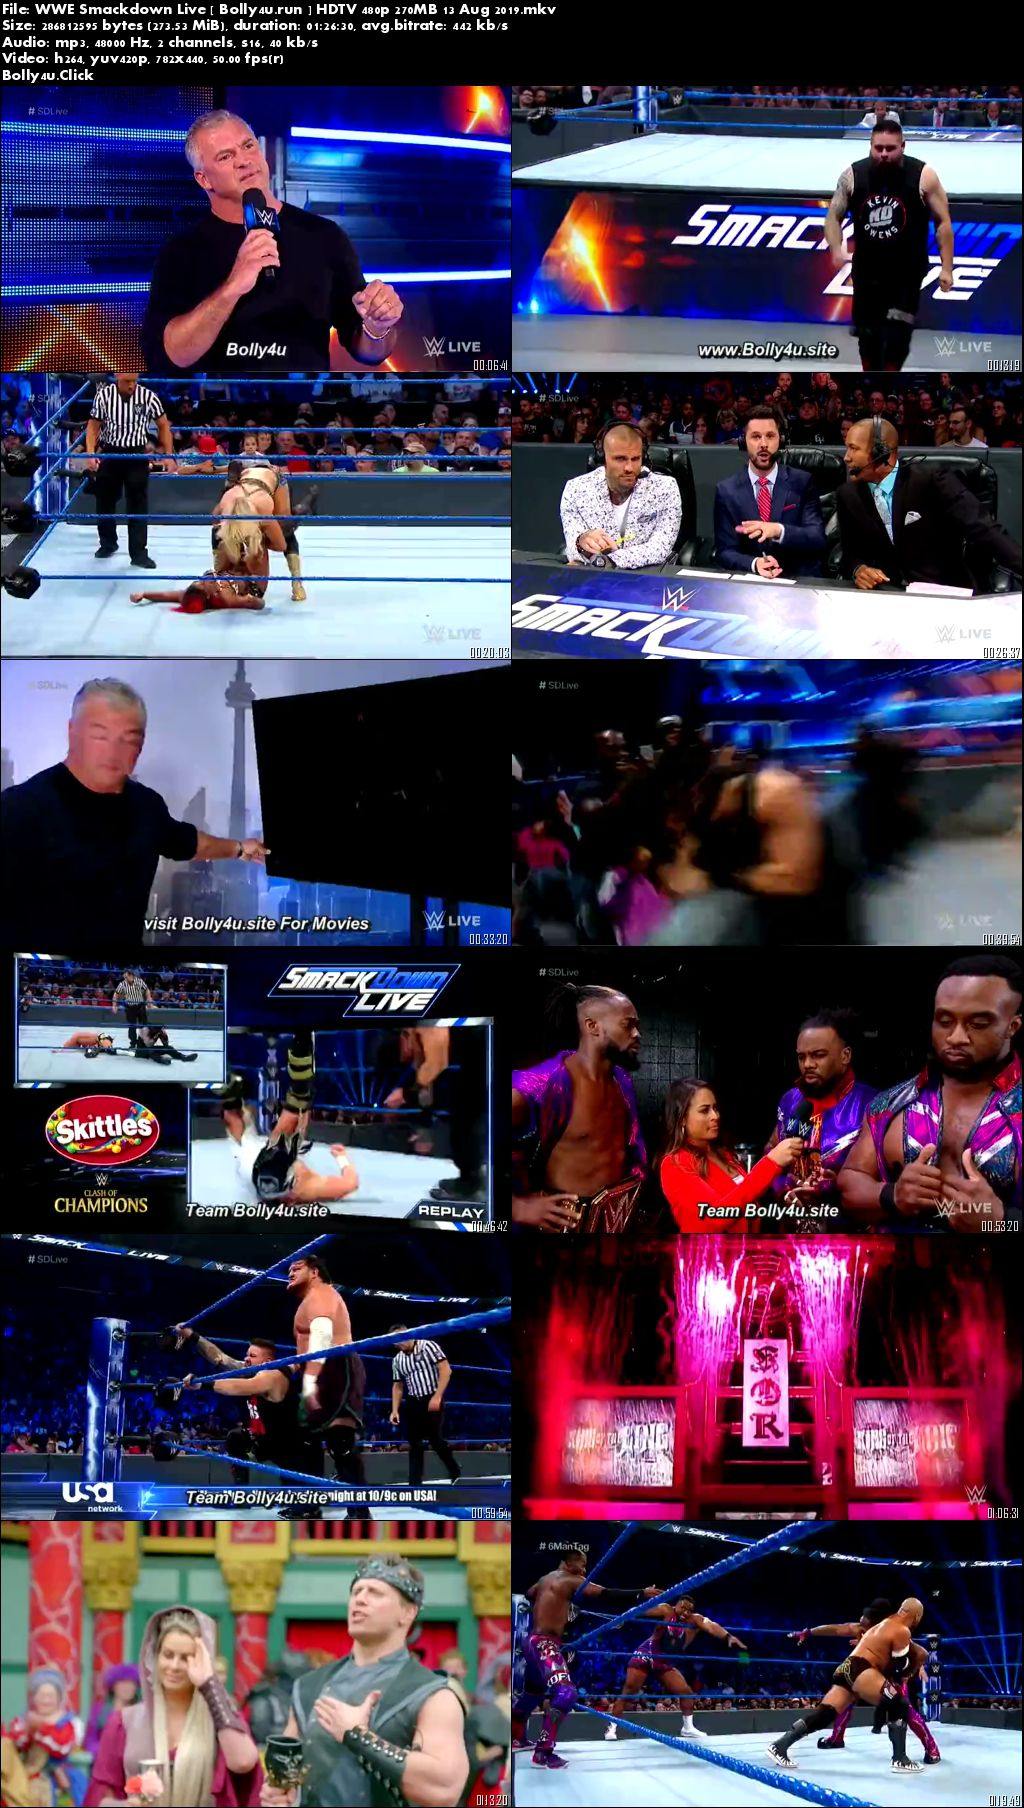 WWE Smackdown Live HDTV 480p 270MB 13 Aug 2019 Download